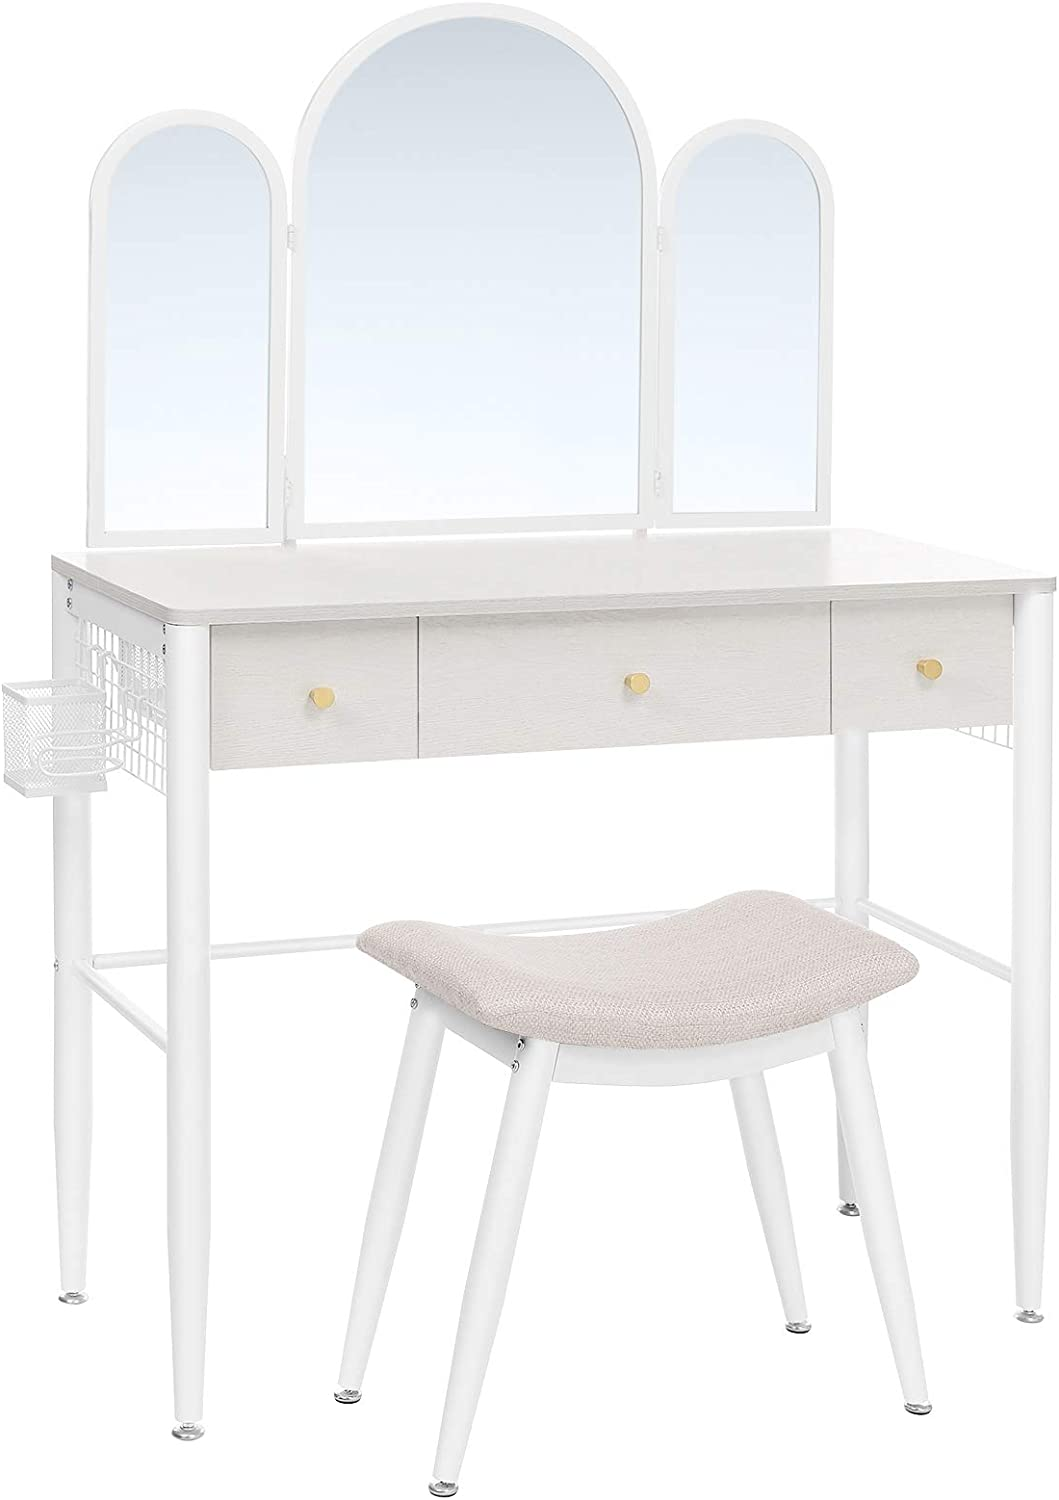 VASAGLE Makeup Vanity Table Set, Dressing Table, Makeup Table with Cushioned Stool, Tri-Fold Mirror, 3 Drawers, and Brush Holder, Metal Frame, Modern Vanity Desk, White URVT003W01